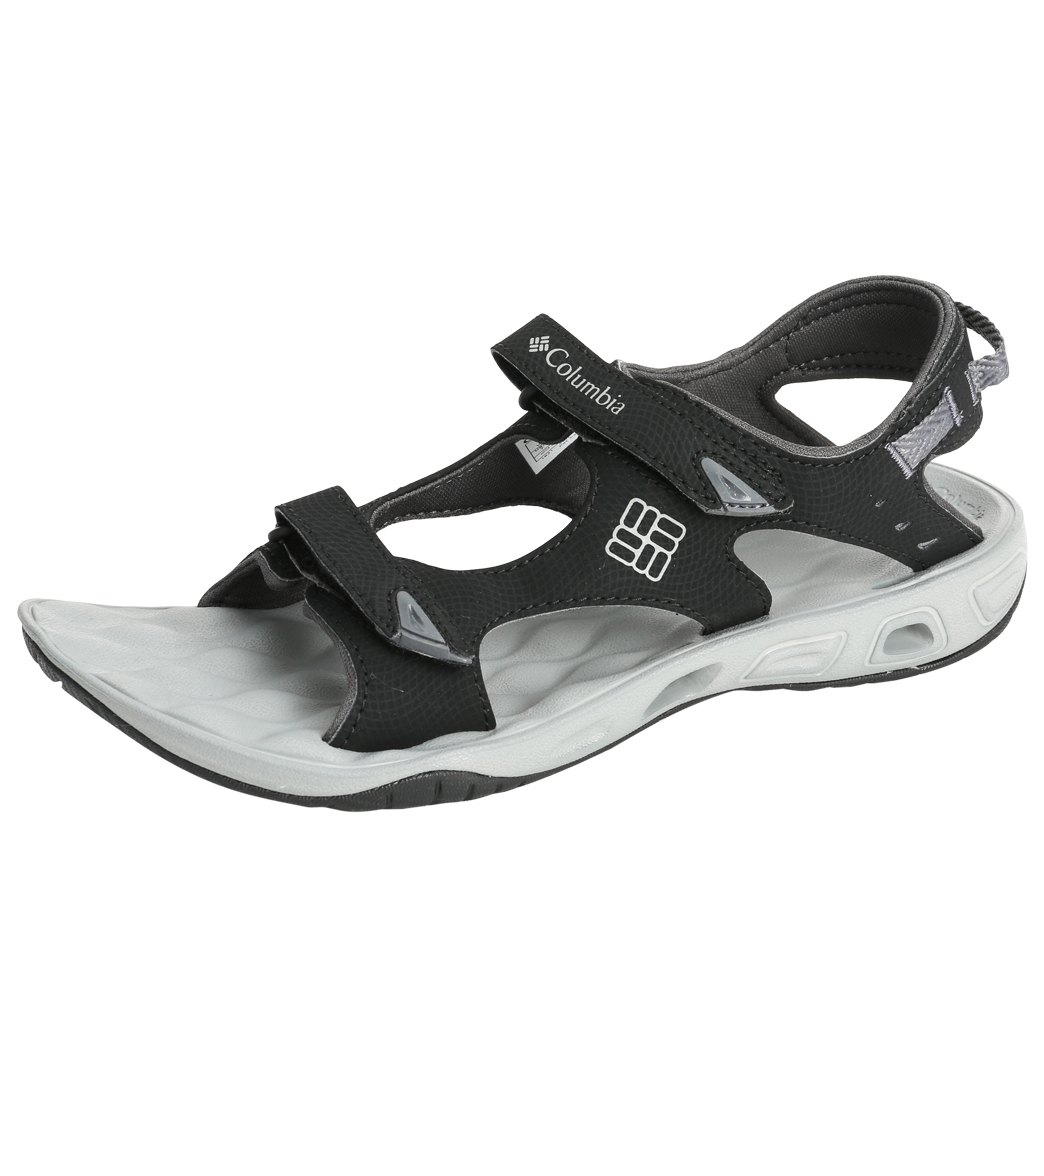 89d981193153 Columbia Women s Sunbreeze Vent Sandal at SwimOutlet.com - Free ...